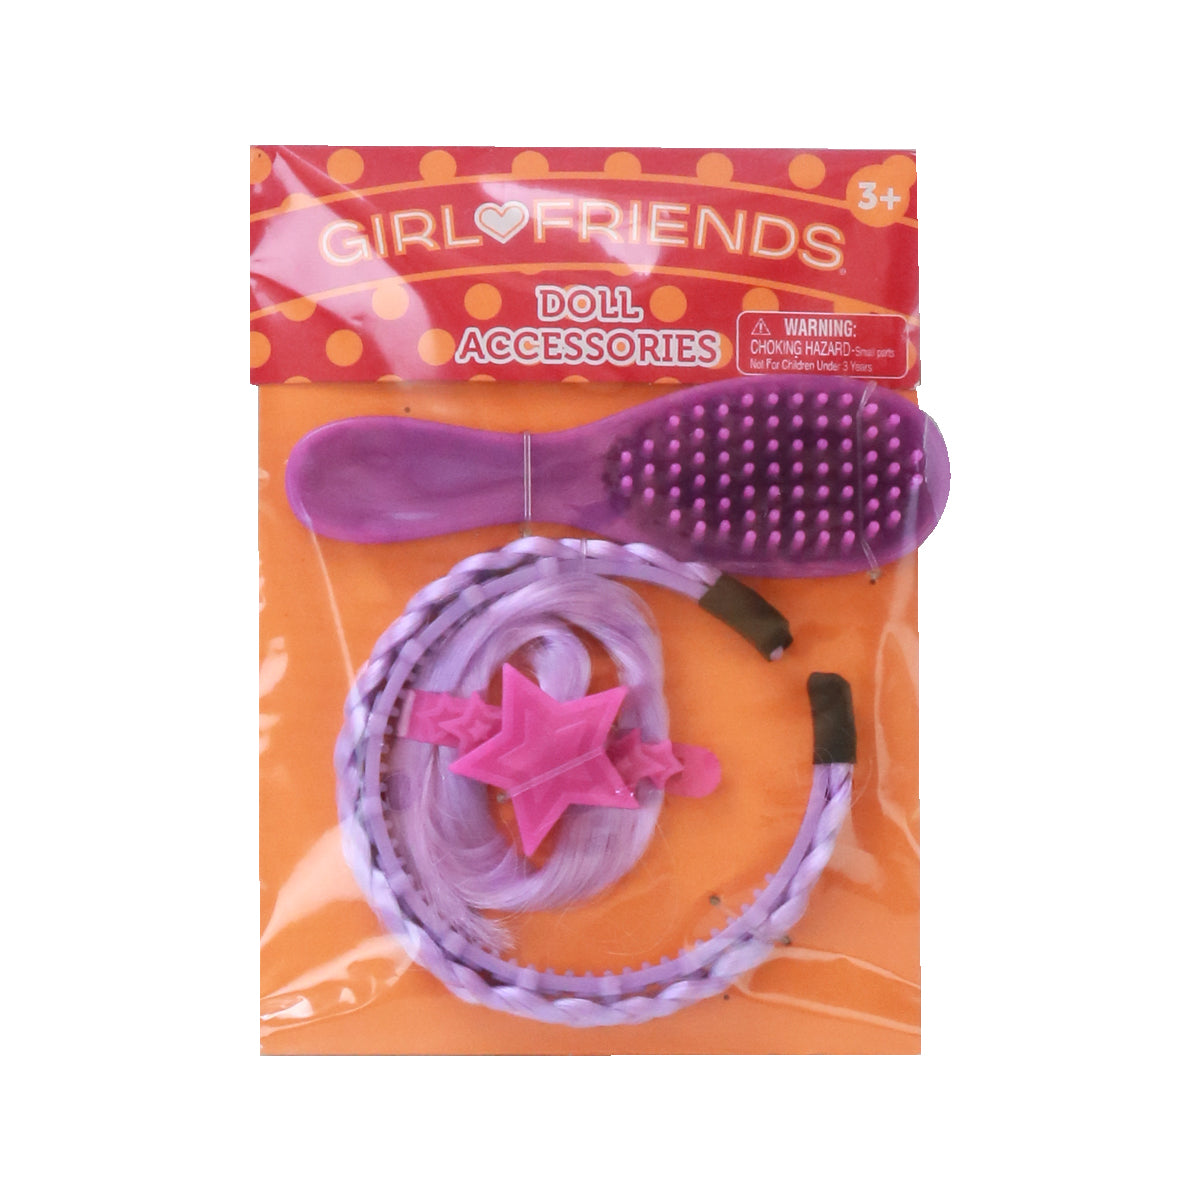 Purple Hair Extensions and Hairbrush - Accessories for 18